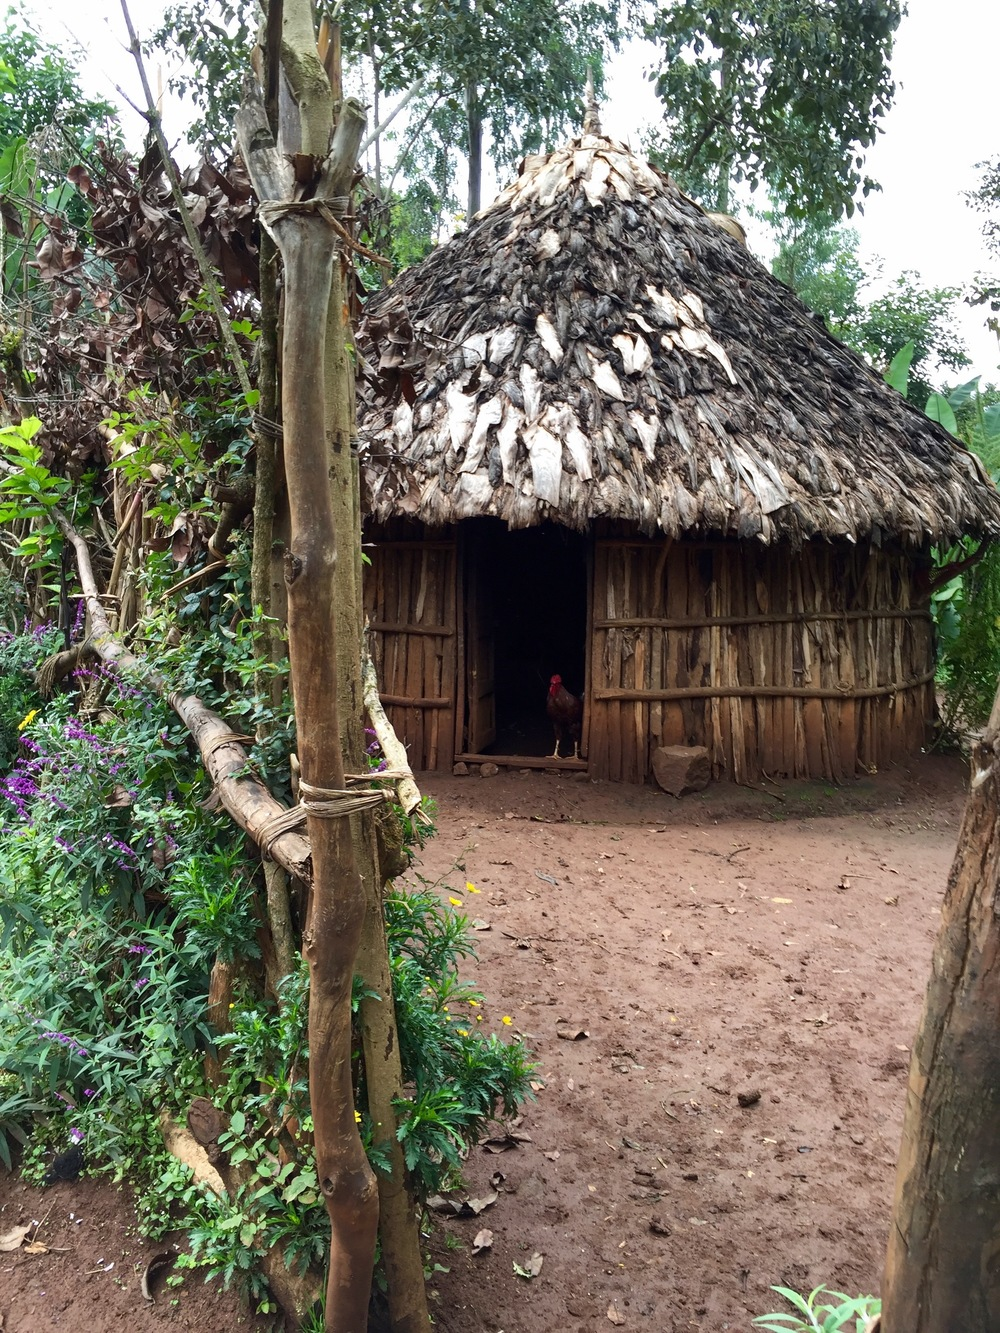 Ethiopian Safari - Plantation Huts